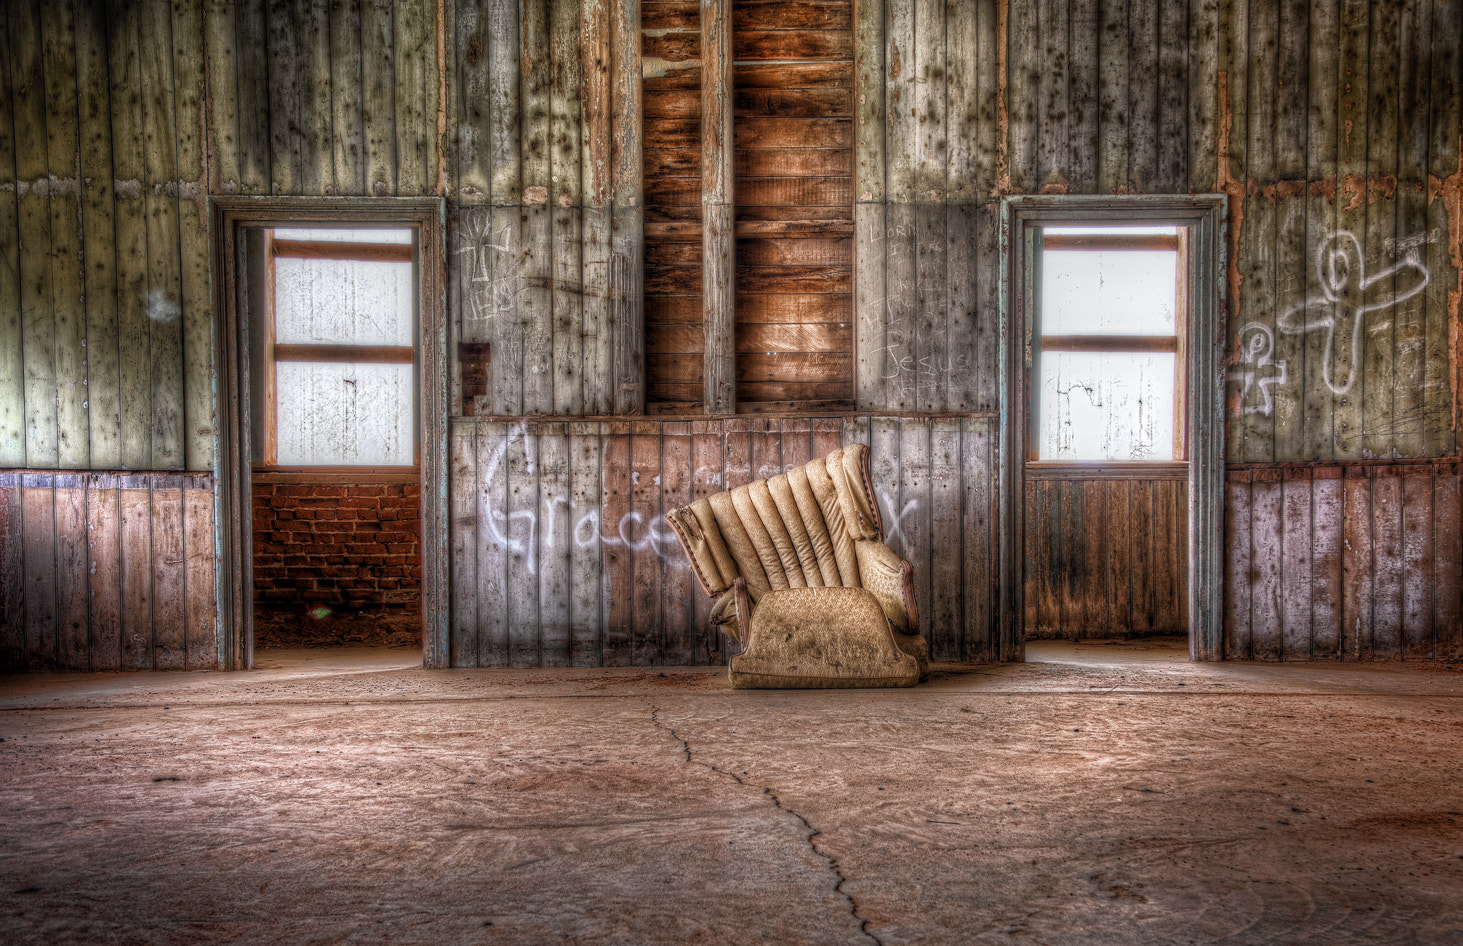 Photograph Two Doors and a Chair by Scott Norris on 500px